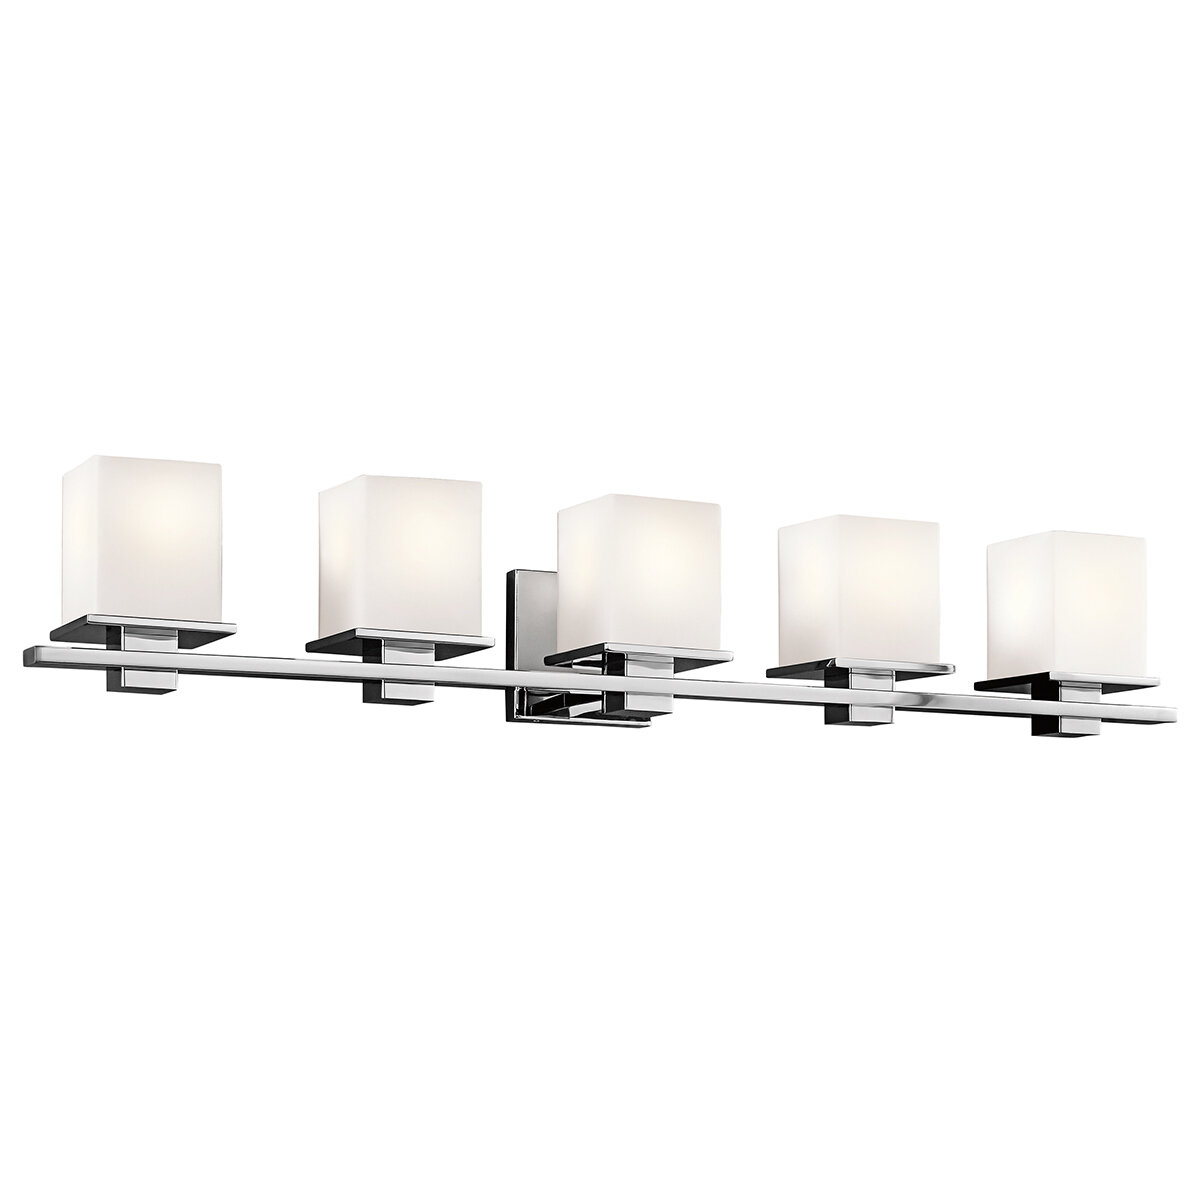 Macri 5 Light Vanity Reviews